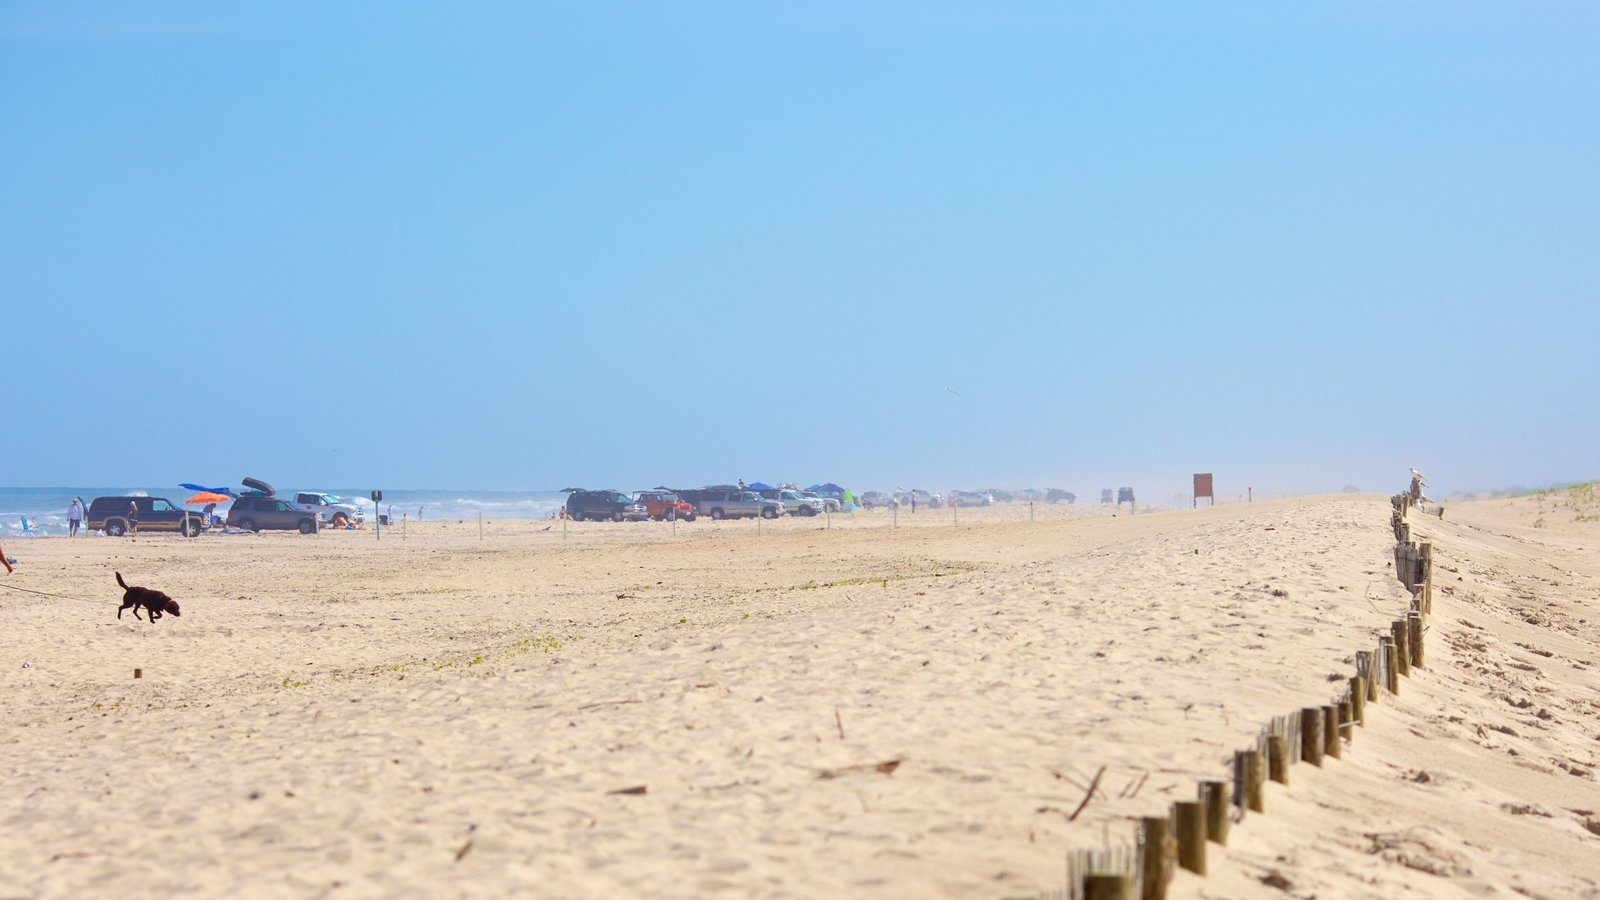 Assateague Island National Seashore which includes a beach and 4 wheel driving